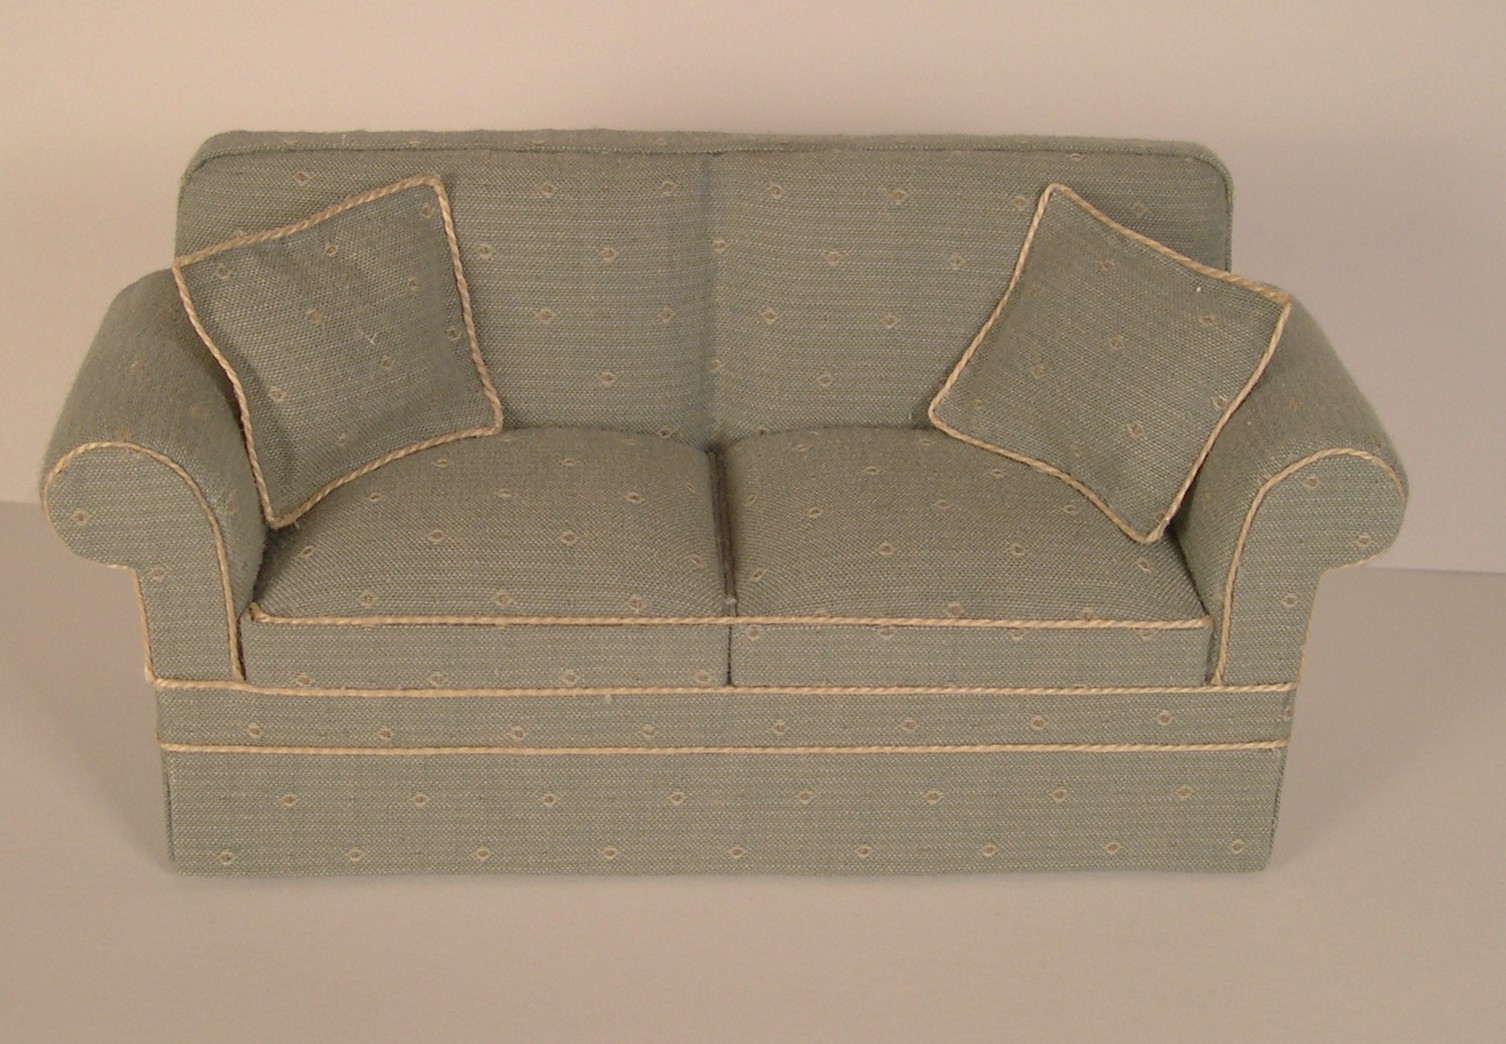 do i have a square cushion or t cushion sofa chair or loveseat